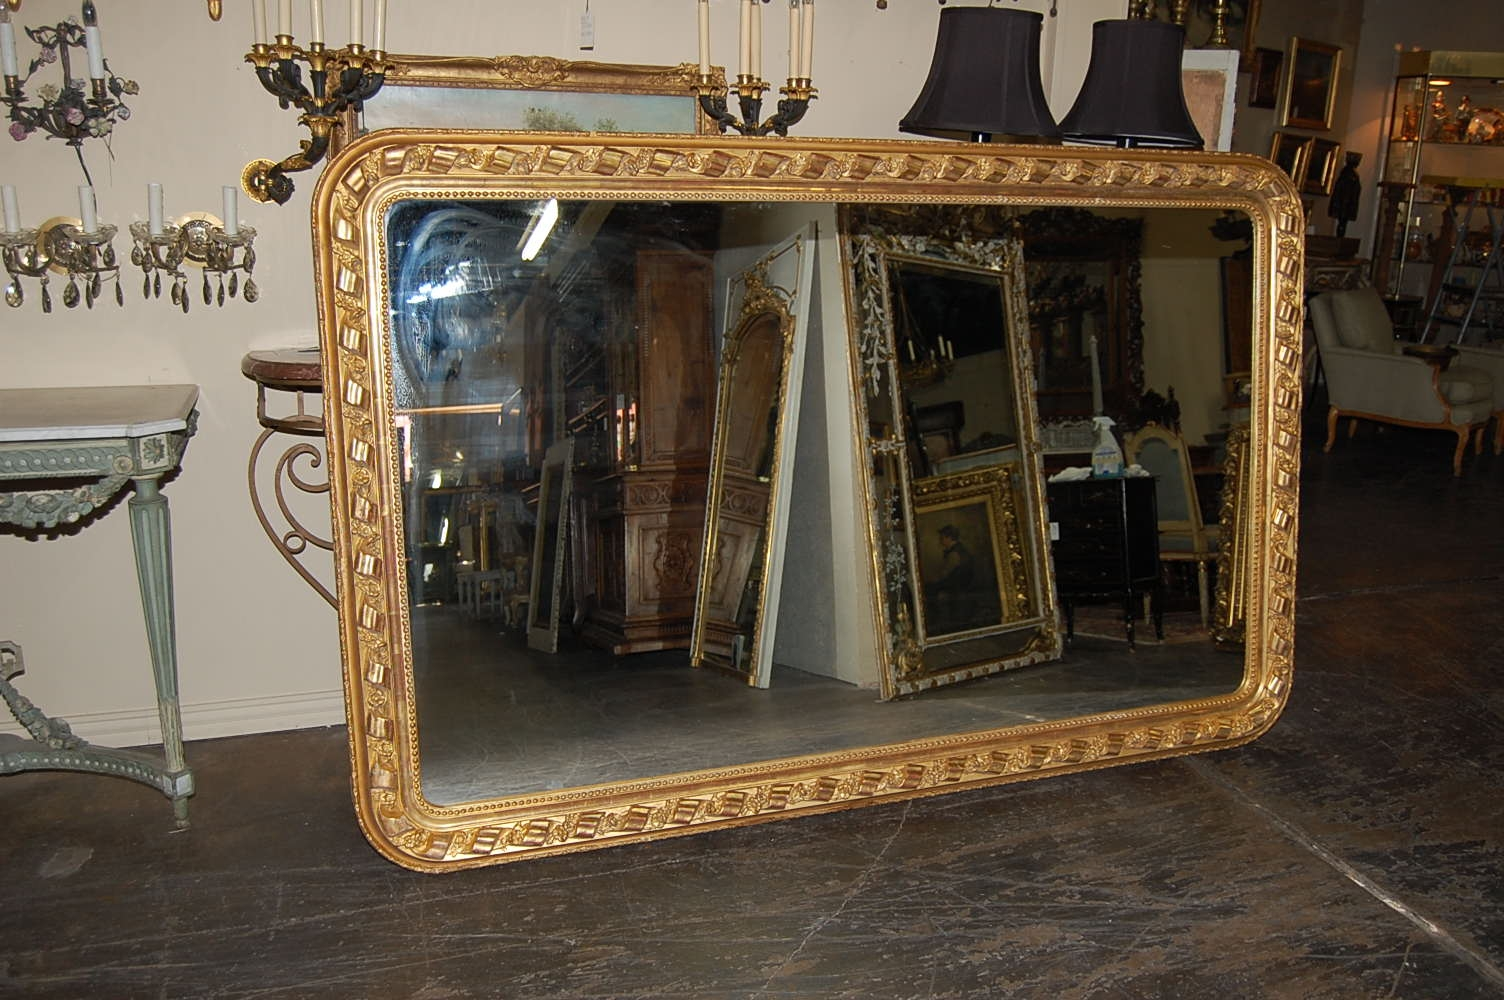 Large French Horizontal Mirror For Sale Antiques Classifieds Inside Old Mirrors For Sale (Image 9 of 15)